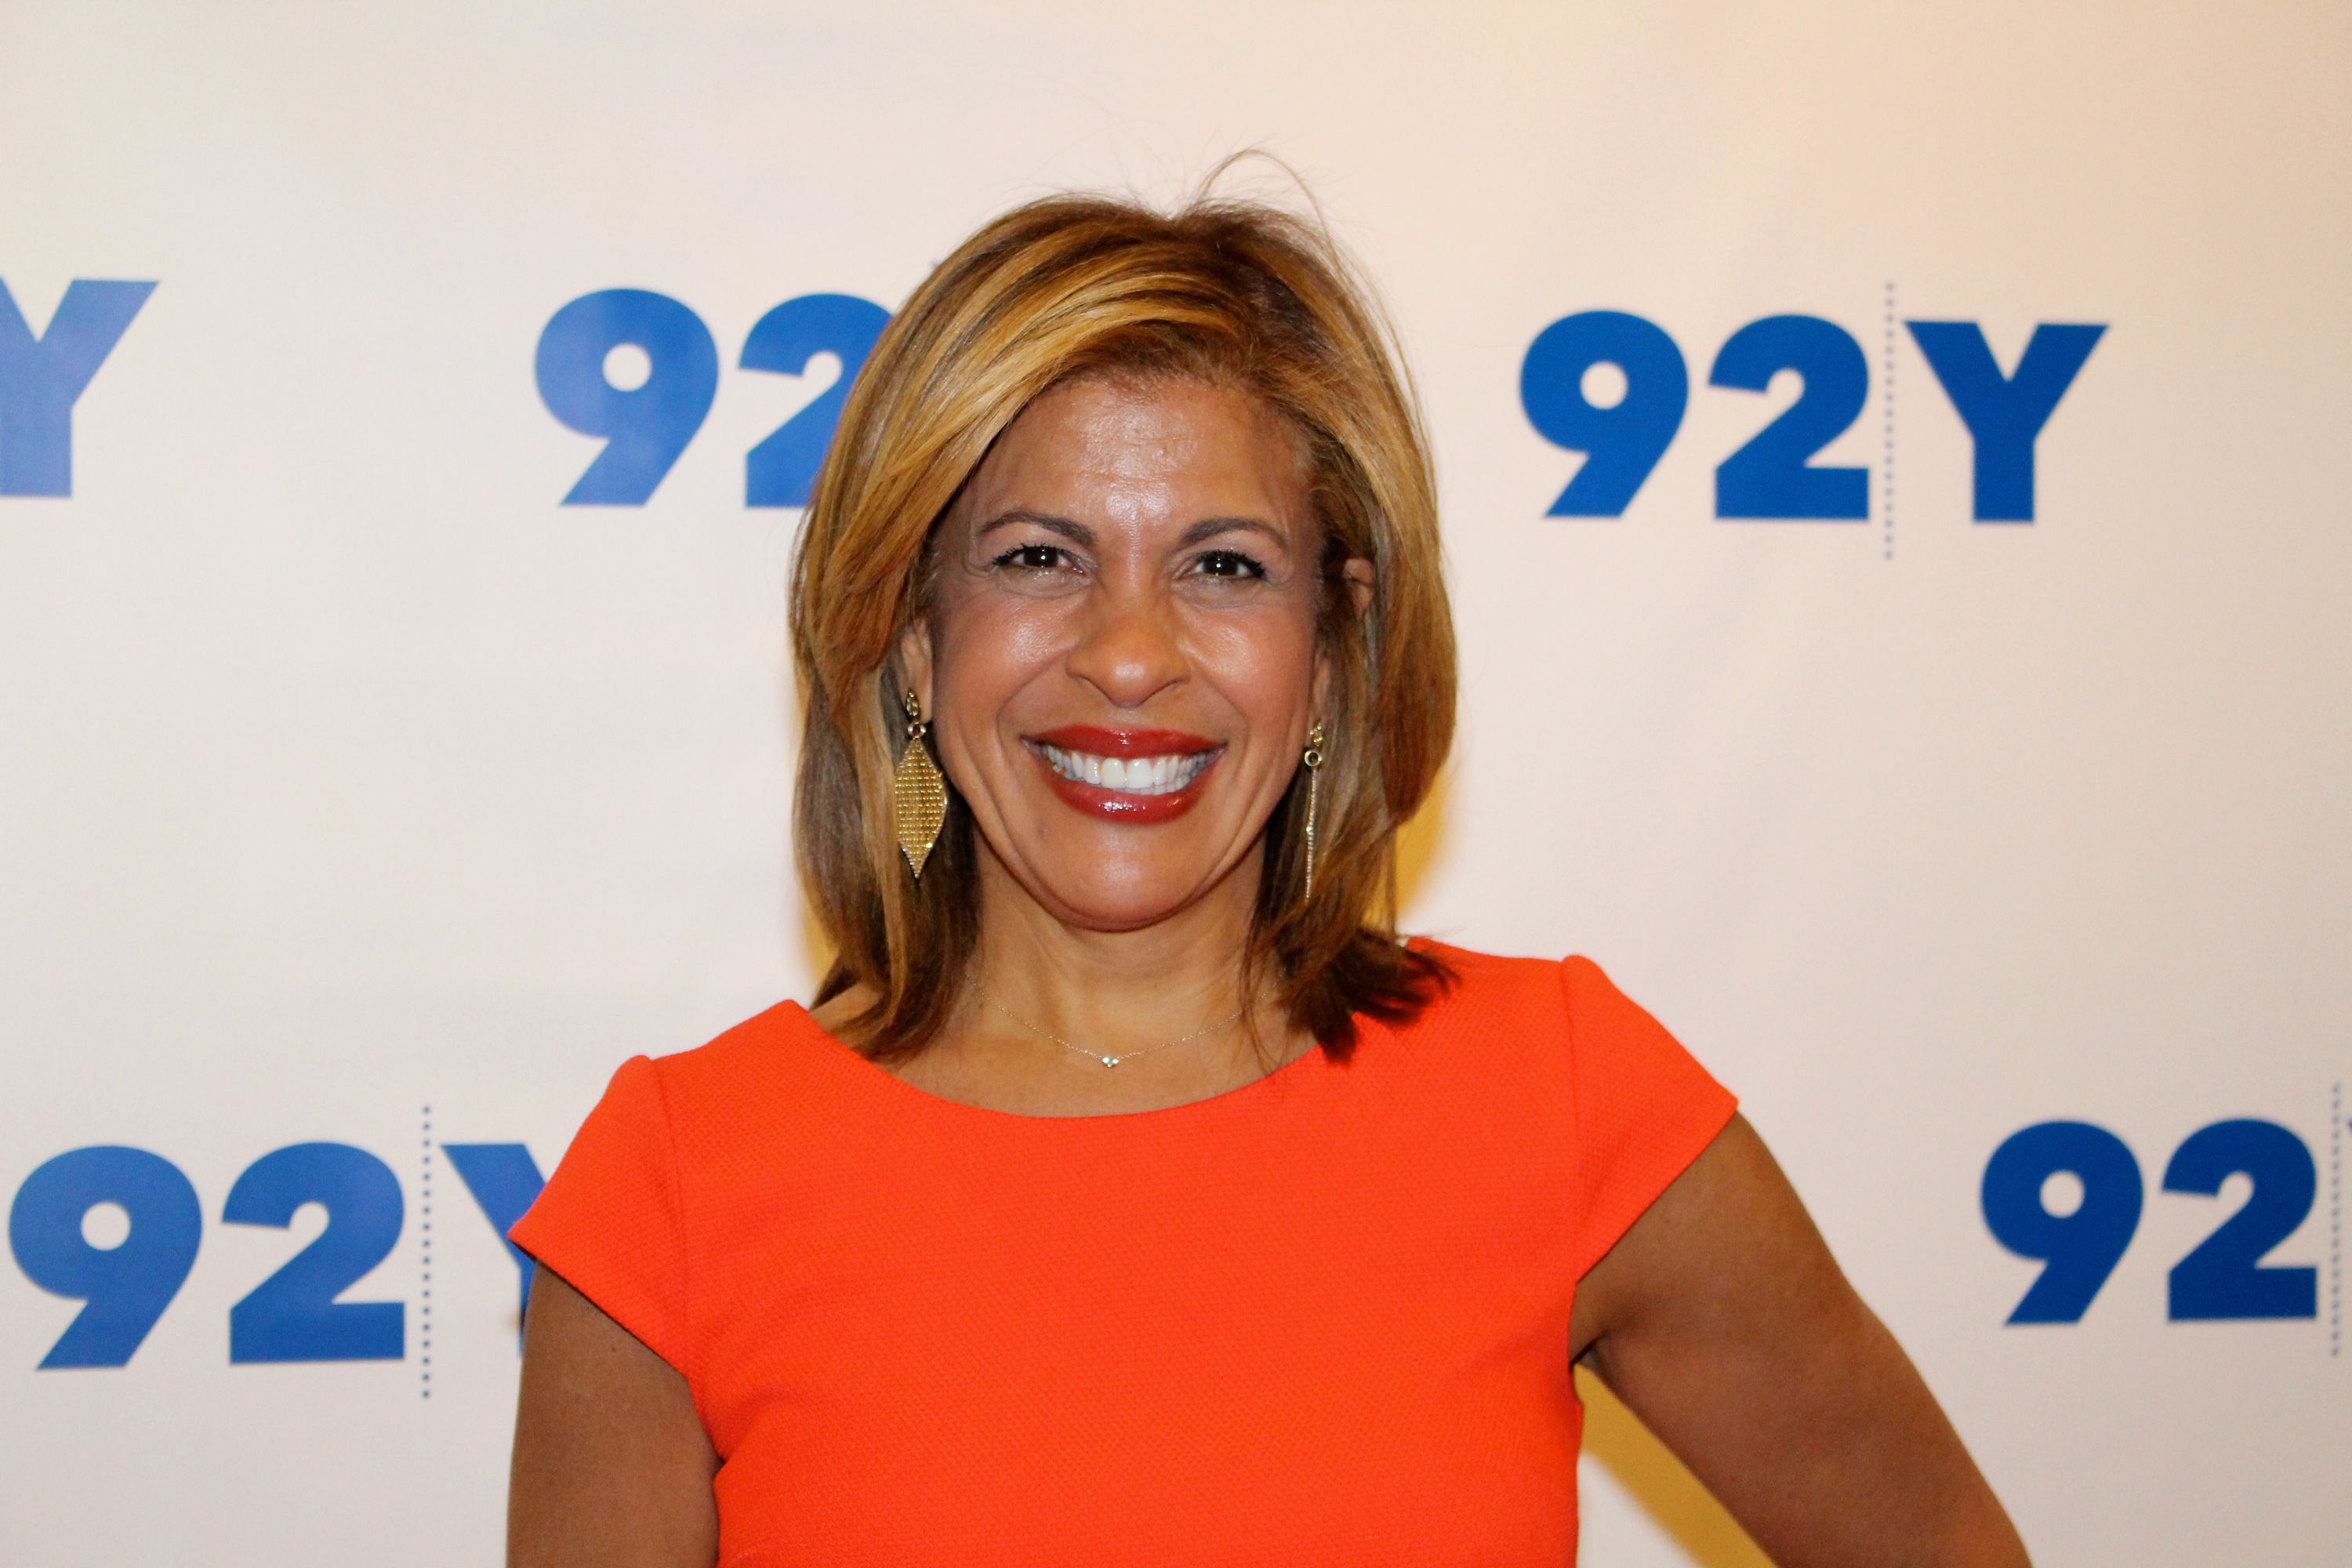 Hoda Kotb Couldn't Wait to Show Off Daughter Haley Joy's Halloween Costume and We Can't Blame Her